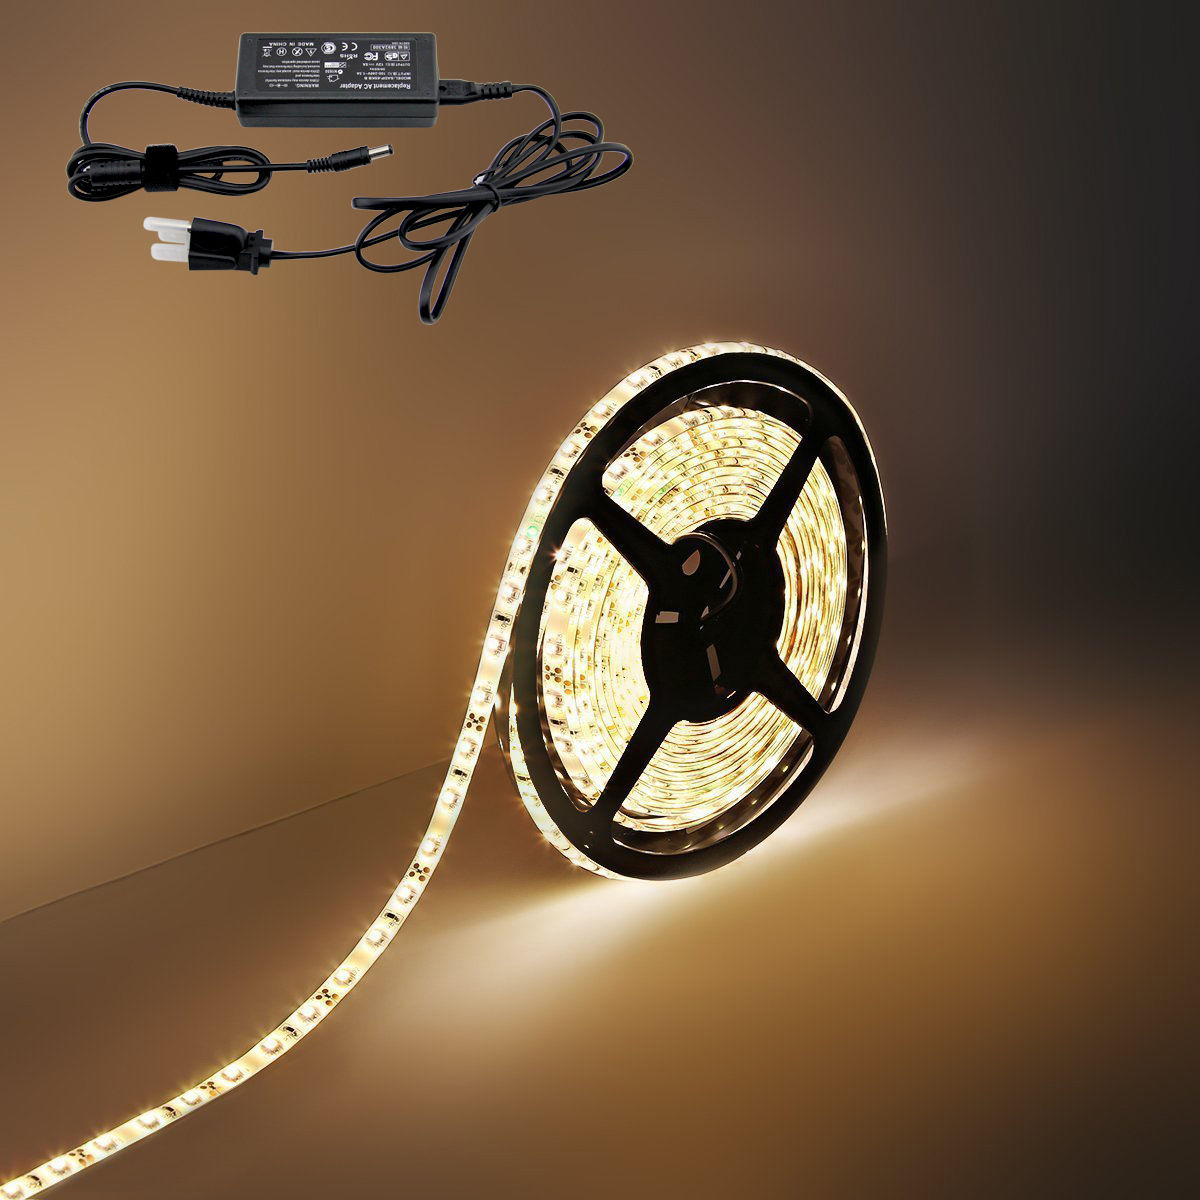 Waterproof 5m Warm White Rgb 12v Dc Dimmable Smd Led Strip